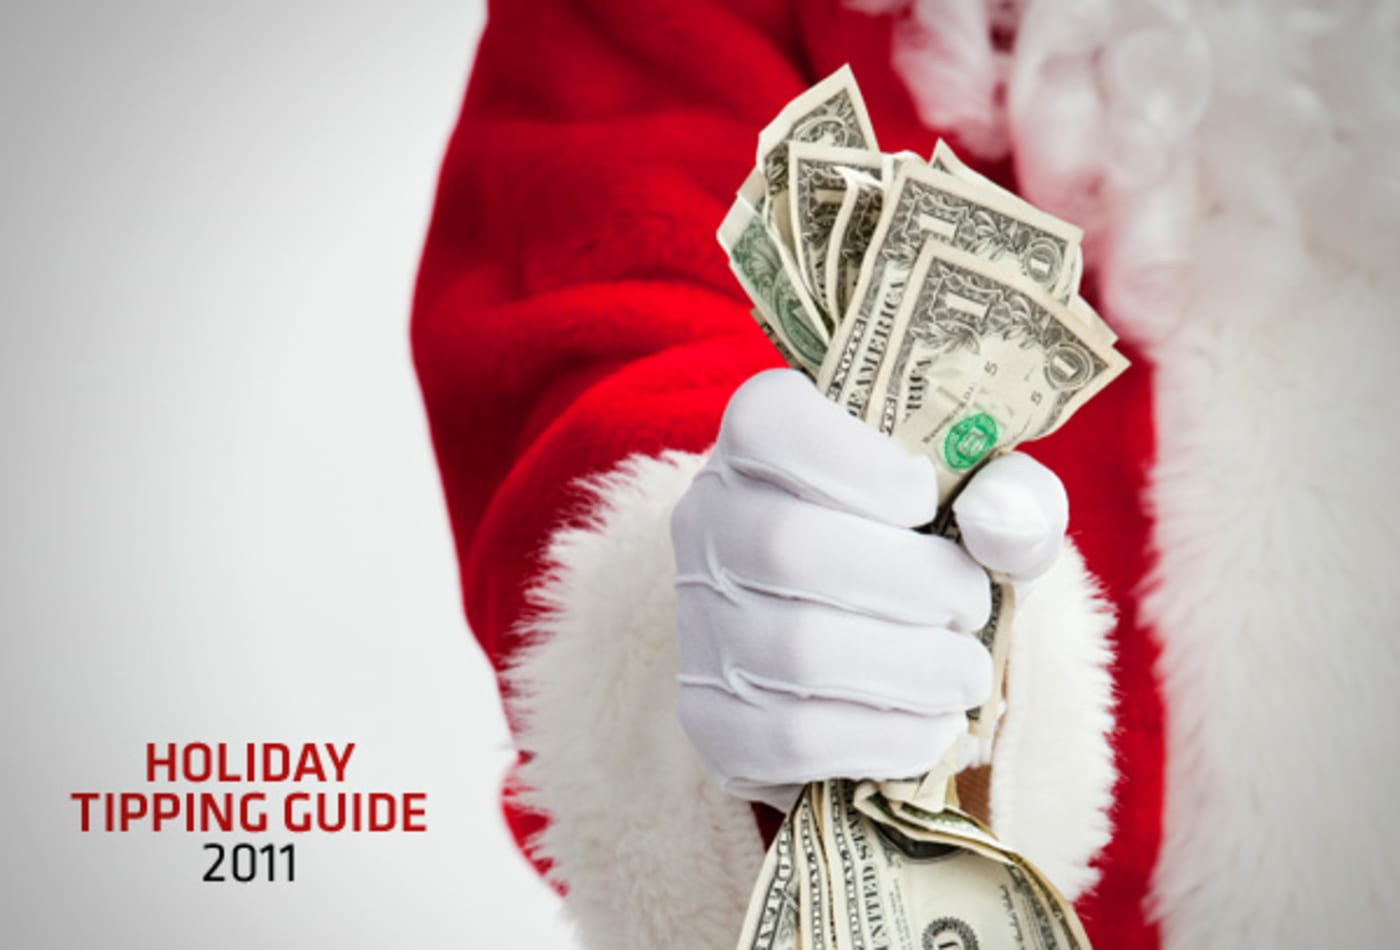 holiday-tipping-guide-2011-cover.jpg